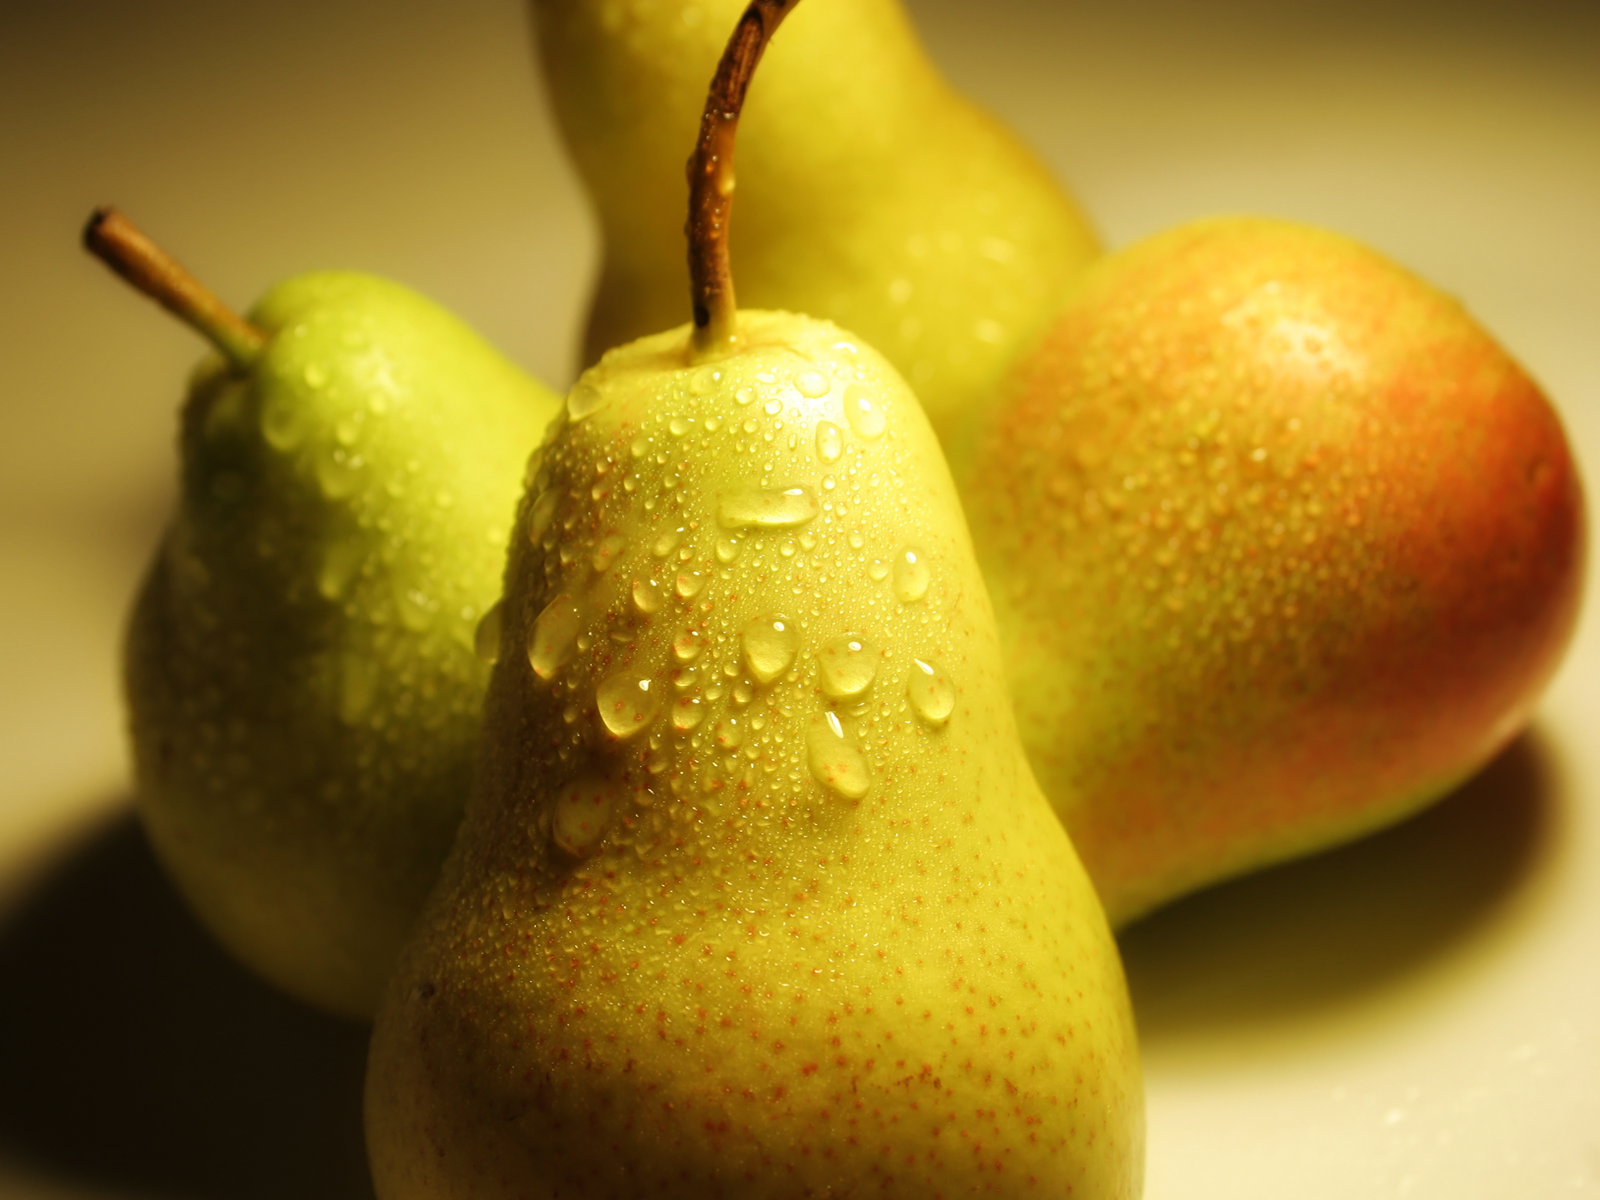 Pears Wallpaper HD